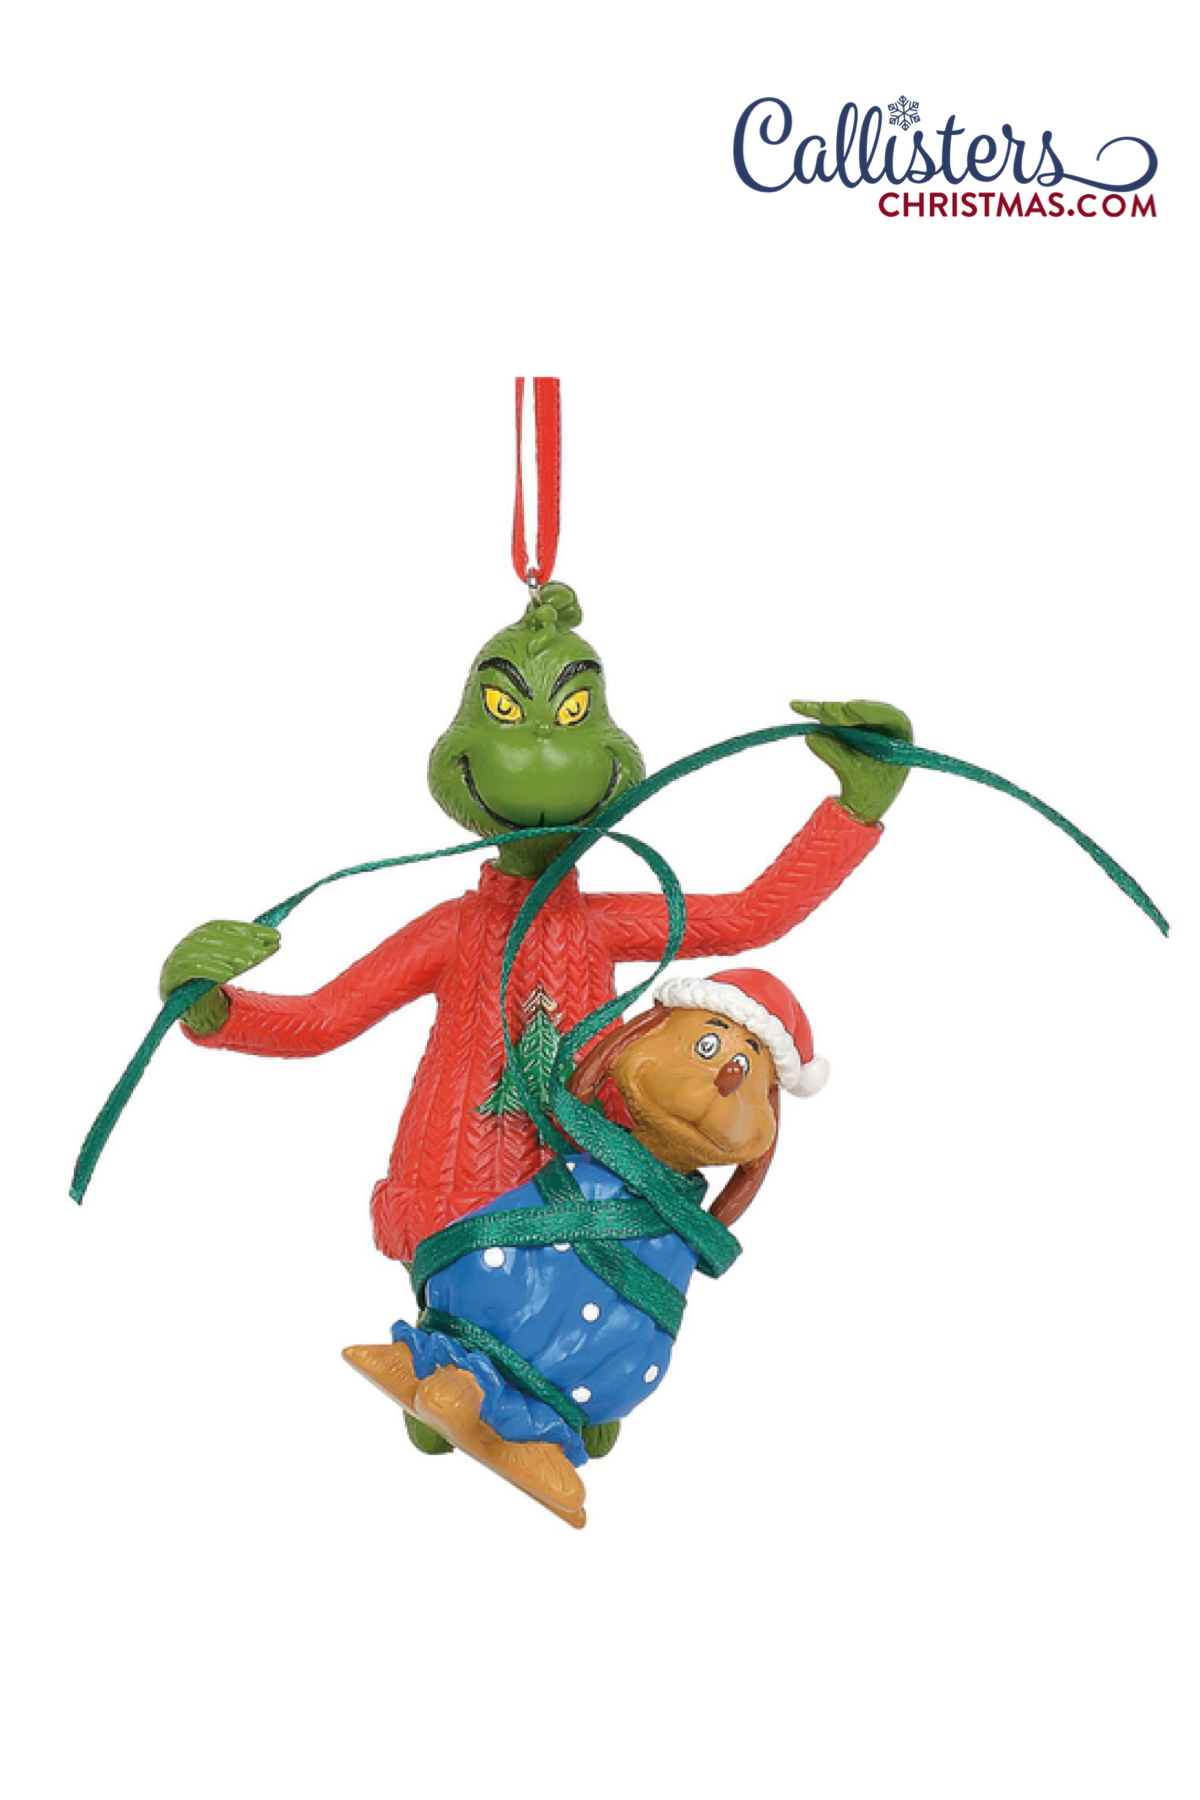 Grinch Wrapping Max Ornament Grinch ornaments, Old world